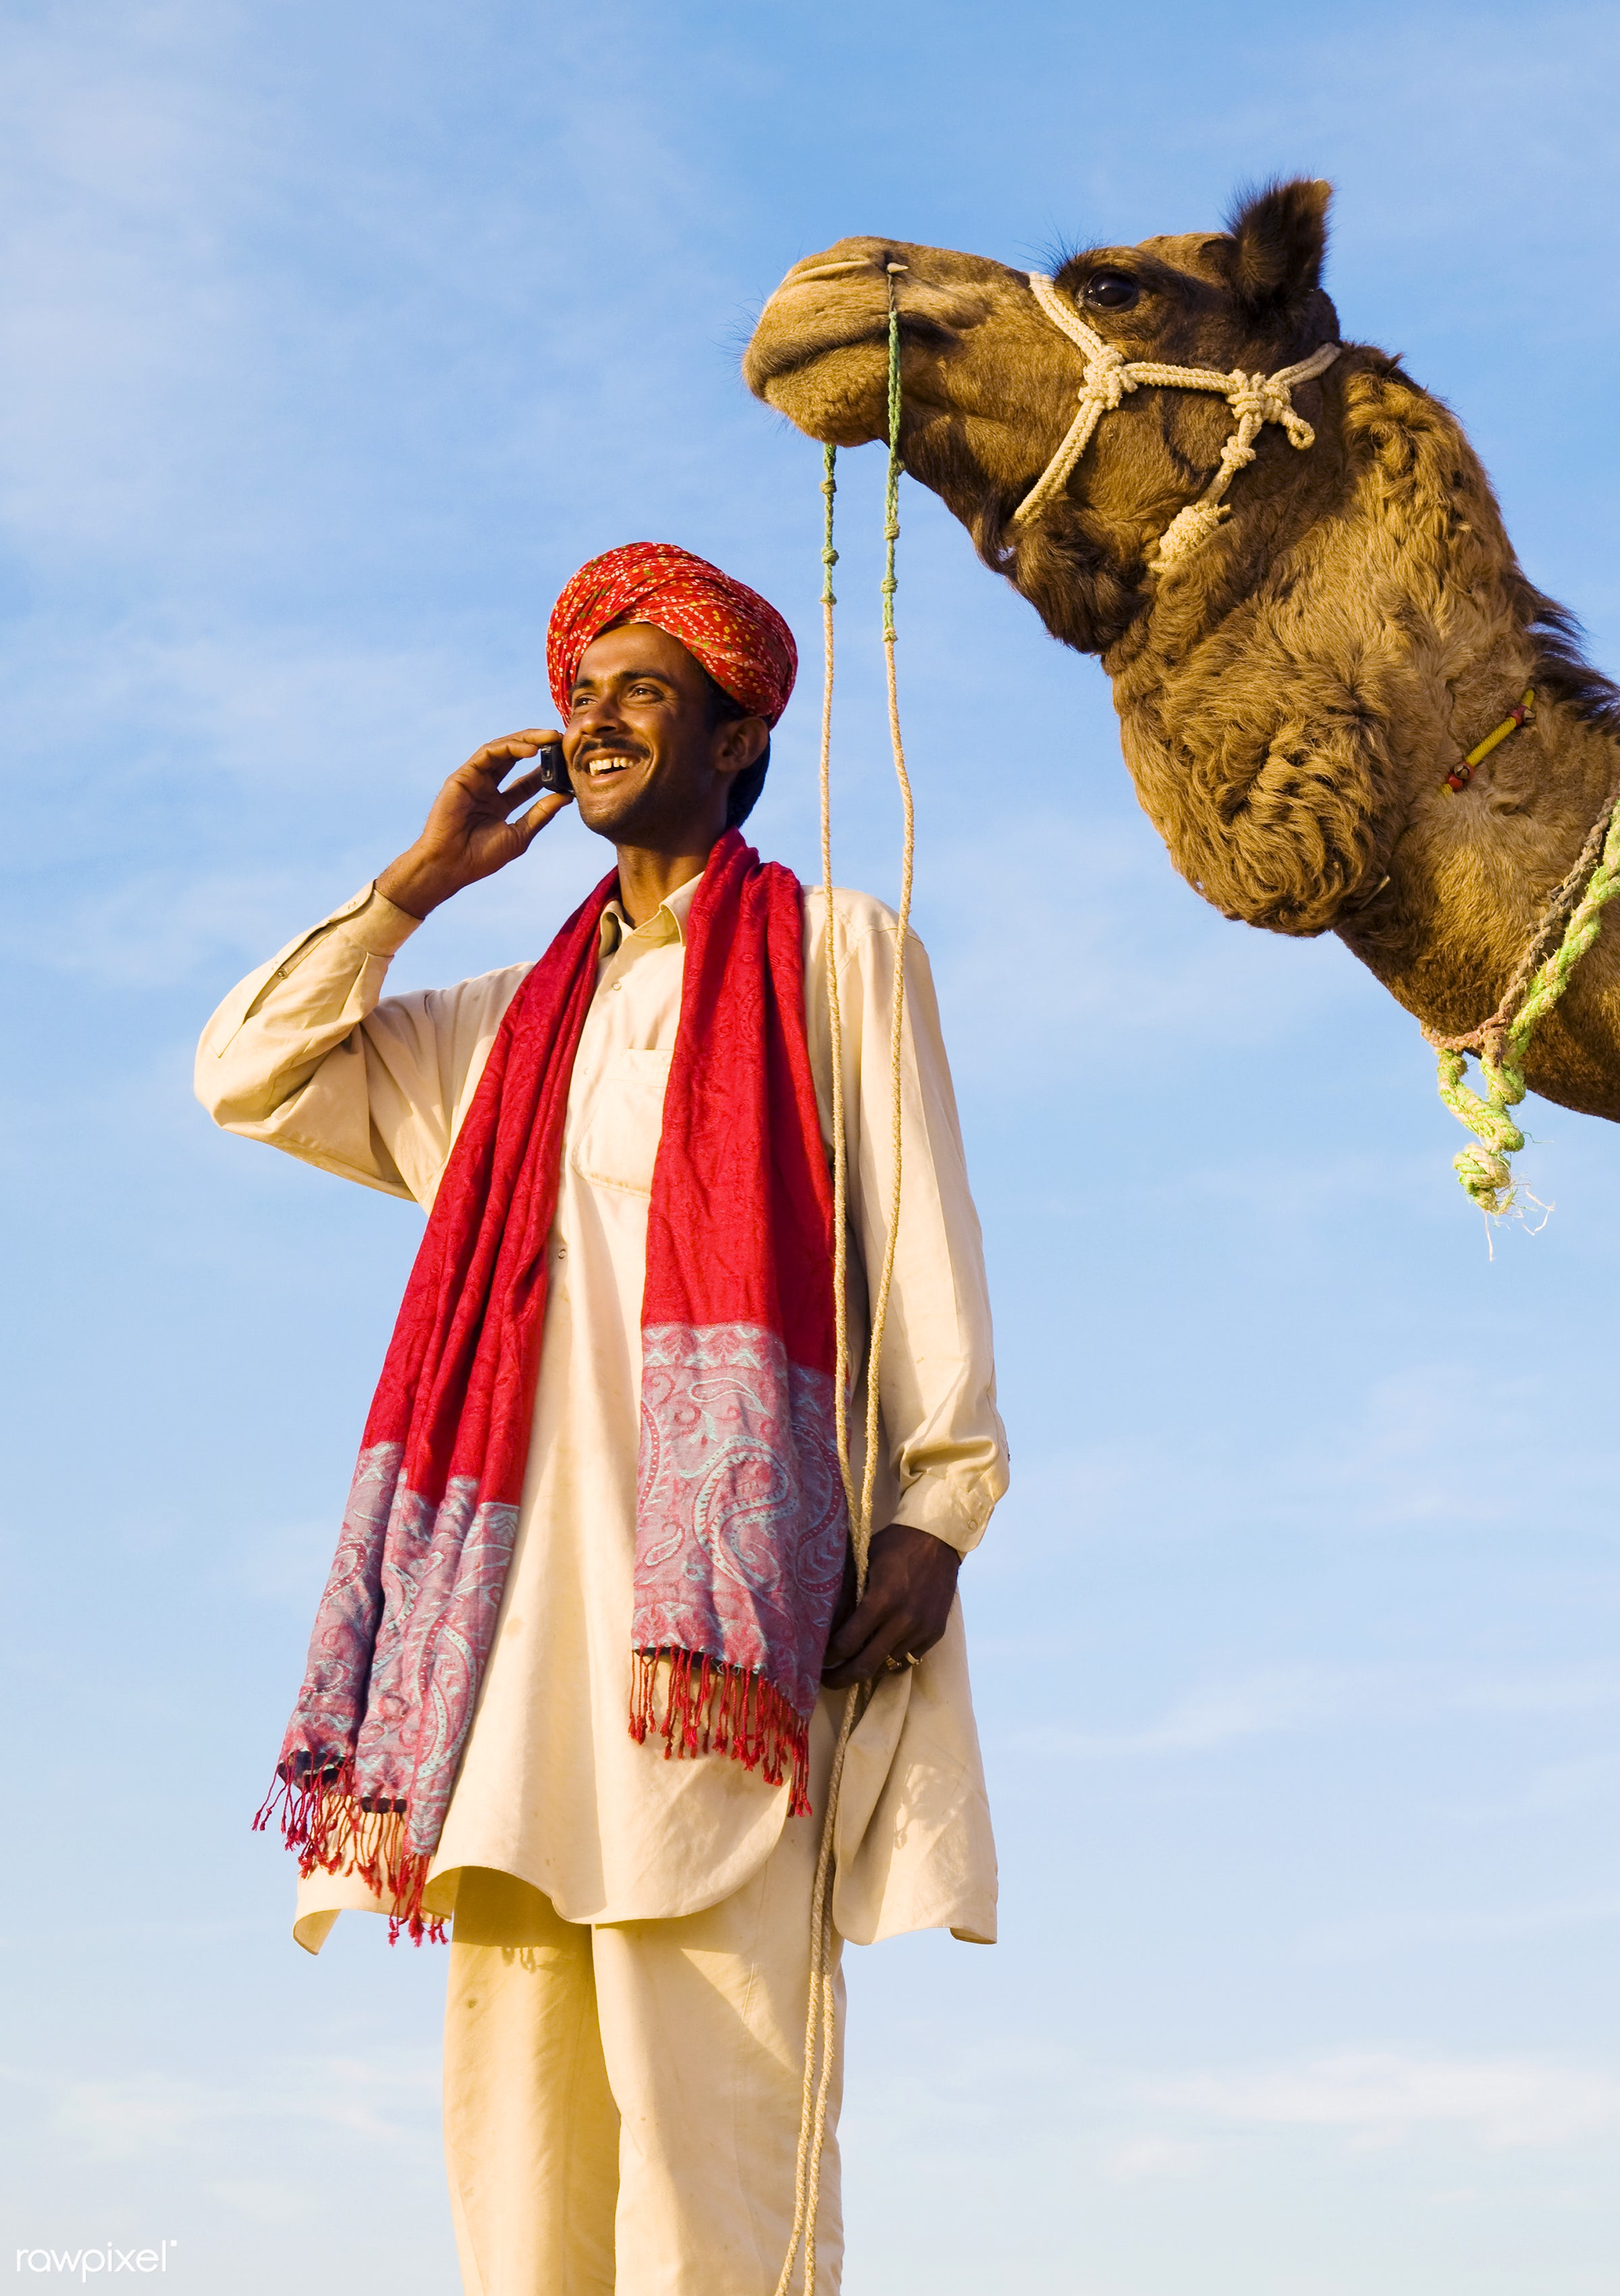 Indian man with camel making a call - animal themes, asia, beauty in nature, business, businessman, camel, cellphone,...